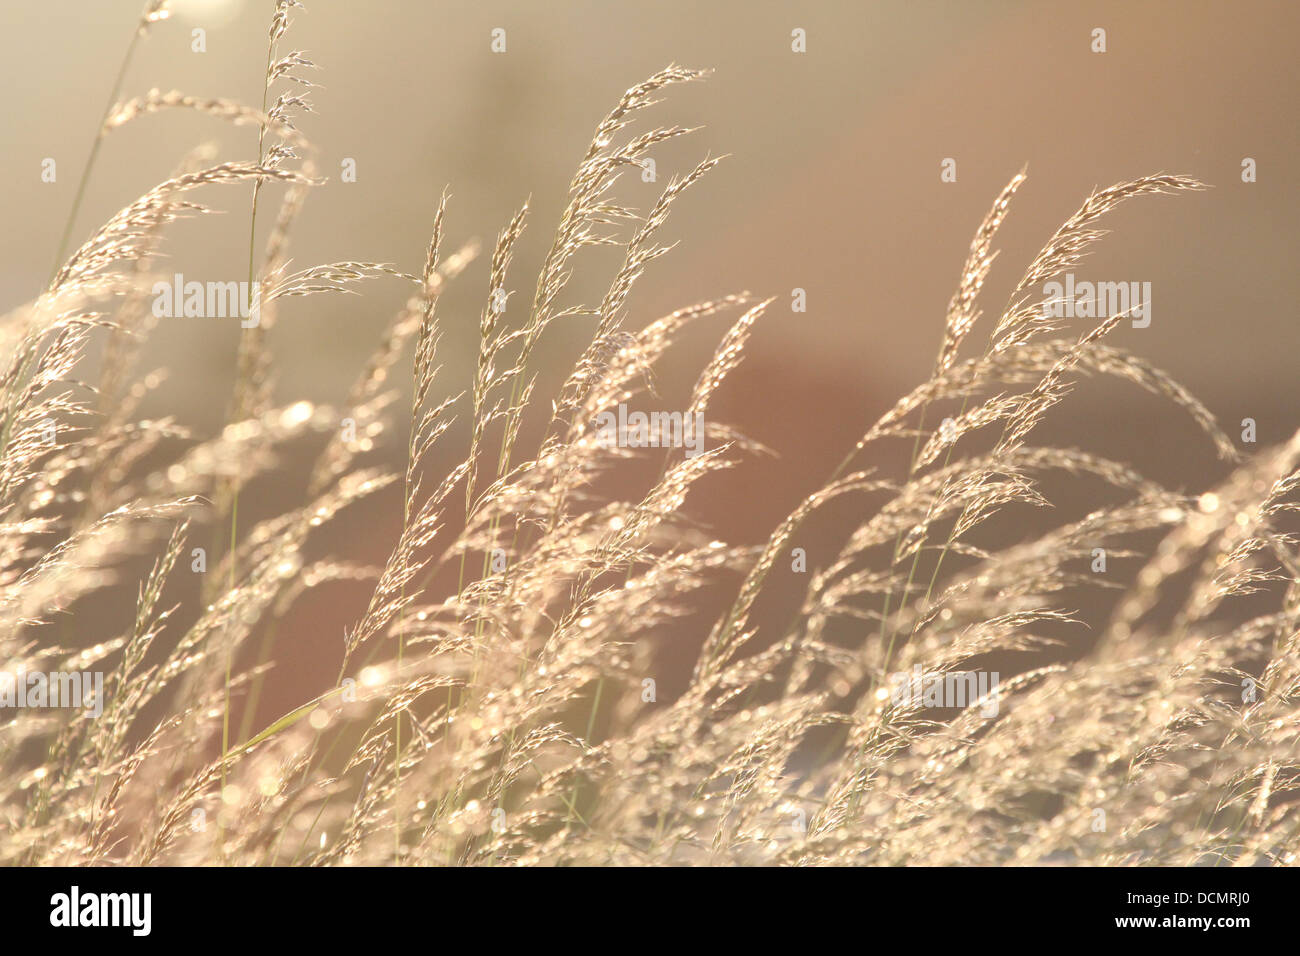 Hay or hay-like plant glistening in the sunlight one late spring or summers day in Hertfordshire, England, United - Stock Image